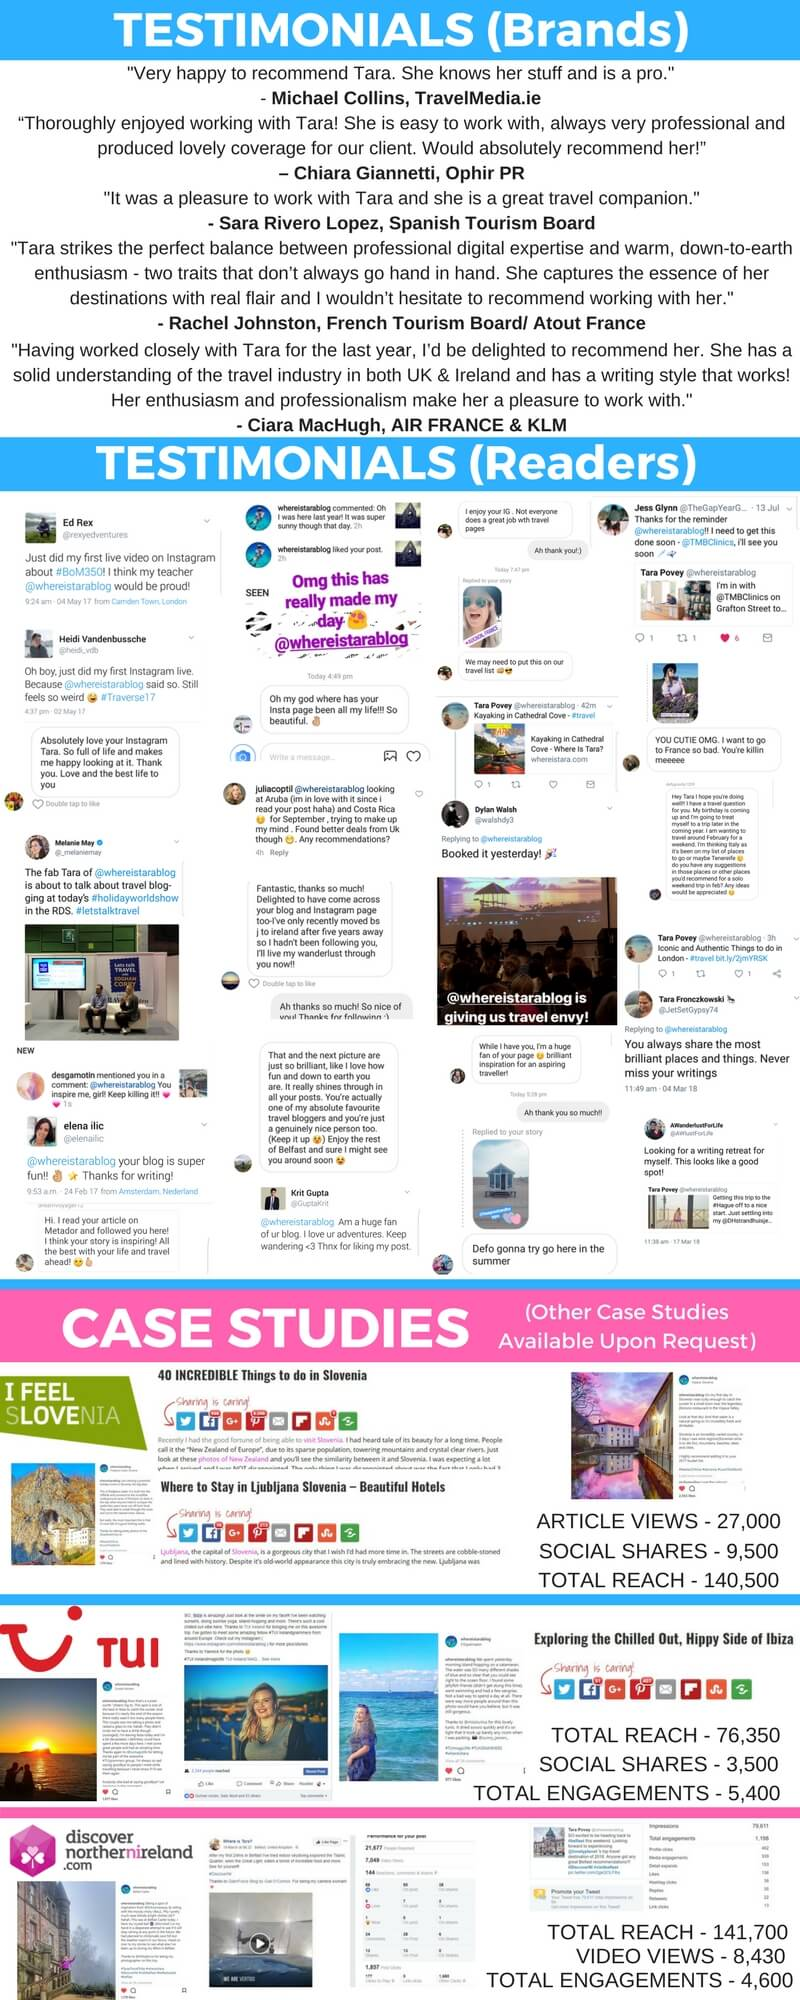 Where is Tara Testimonials and Case Studies April 2018 updated